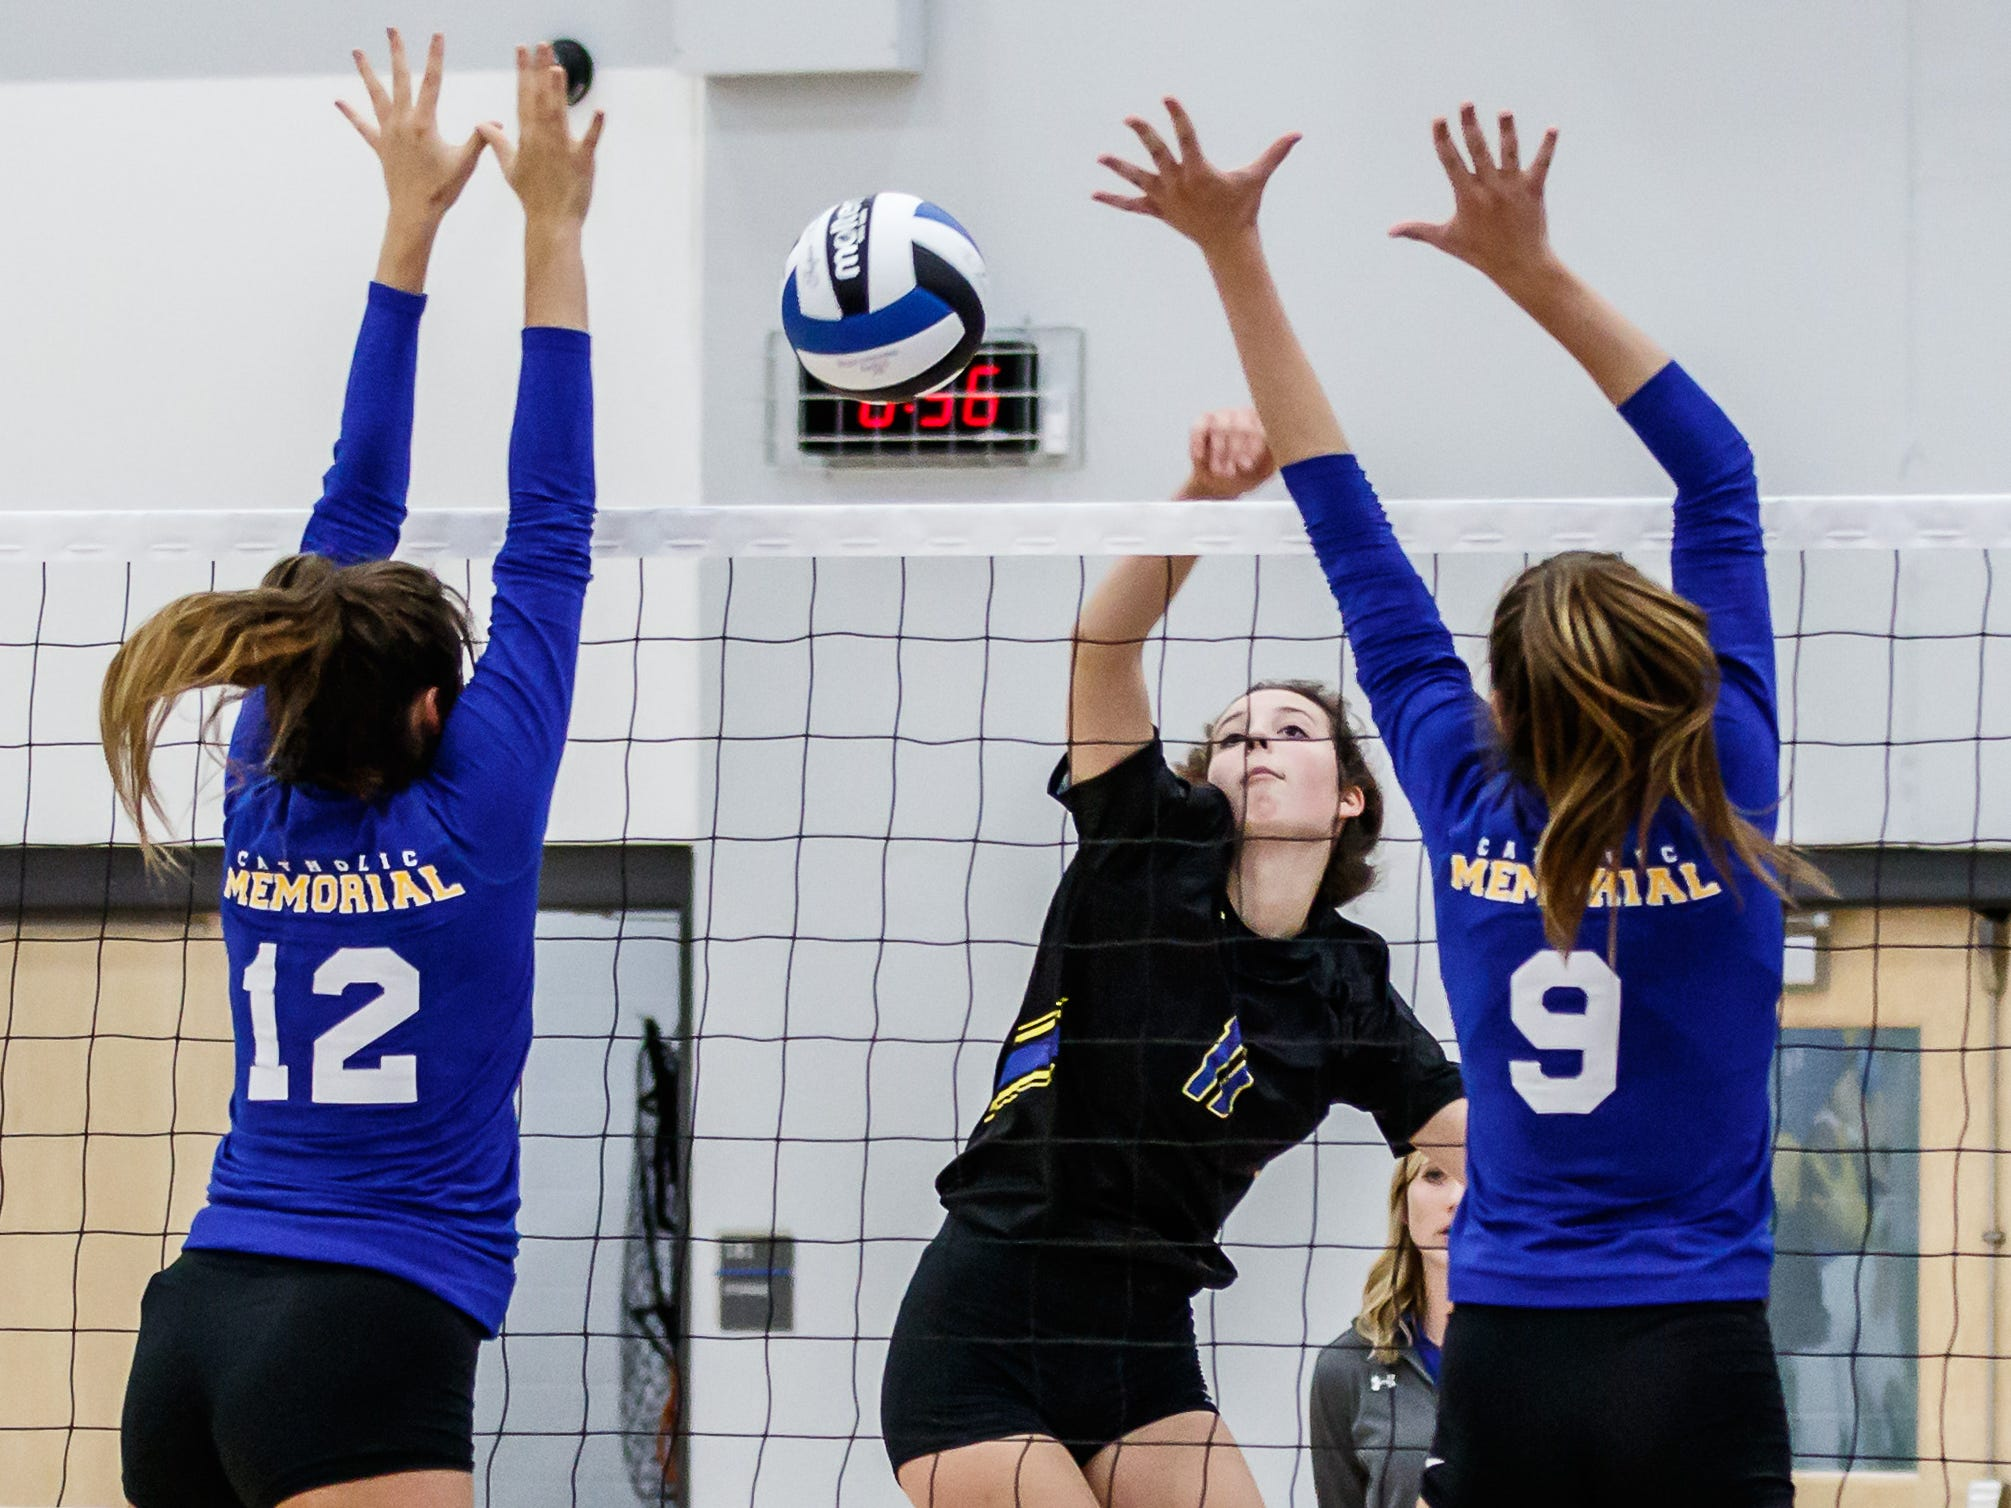 Mukwonago sophomore Marissa Reynolds (11) hits the gap between Catholic Memorial's Jenna Weinfurt (12) and Kaitlyn Riley (9) during the match at Mukwonago on Tuesday, Sept. 11, 2018.